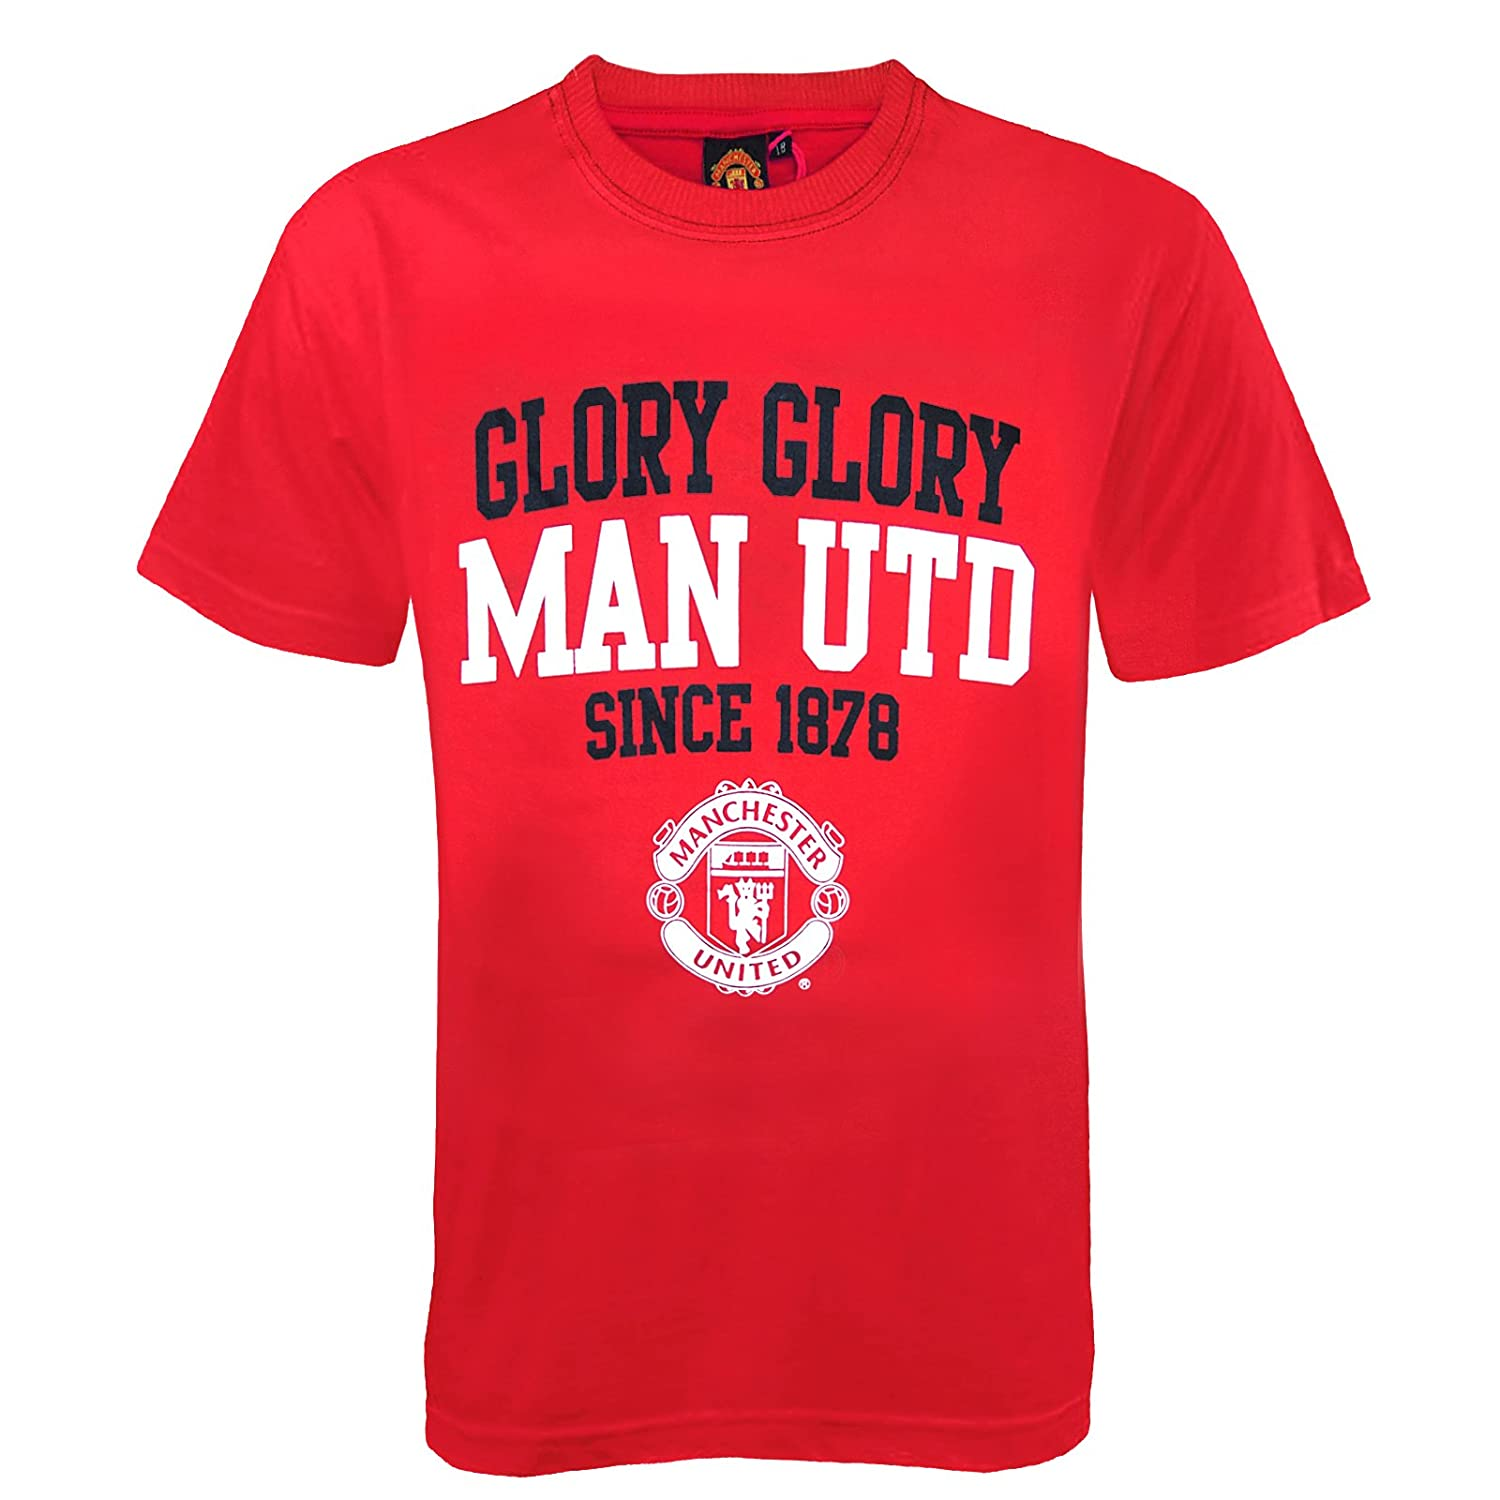 Manchester United Football Club Official SoccerギフトBoysグラフィックTシャツレッド 7-8 Years  B00U17S46O